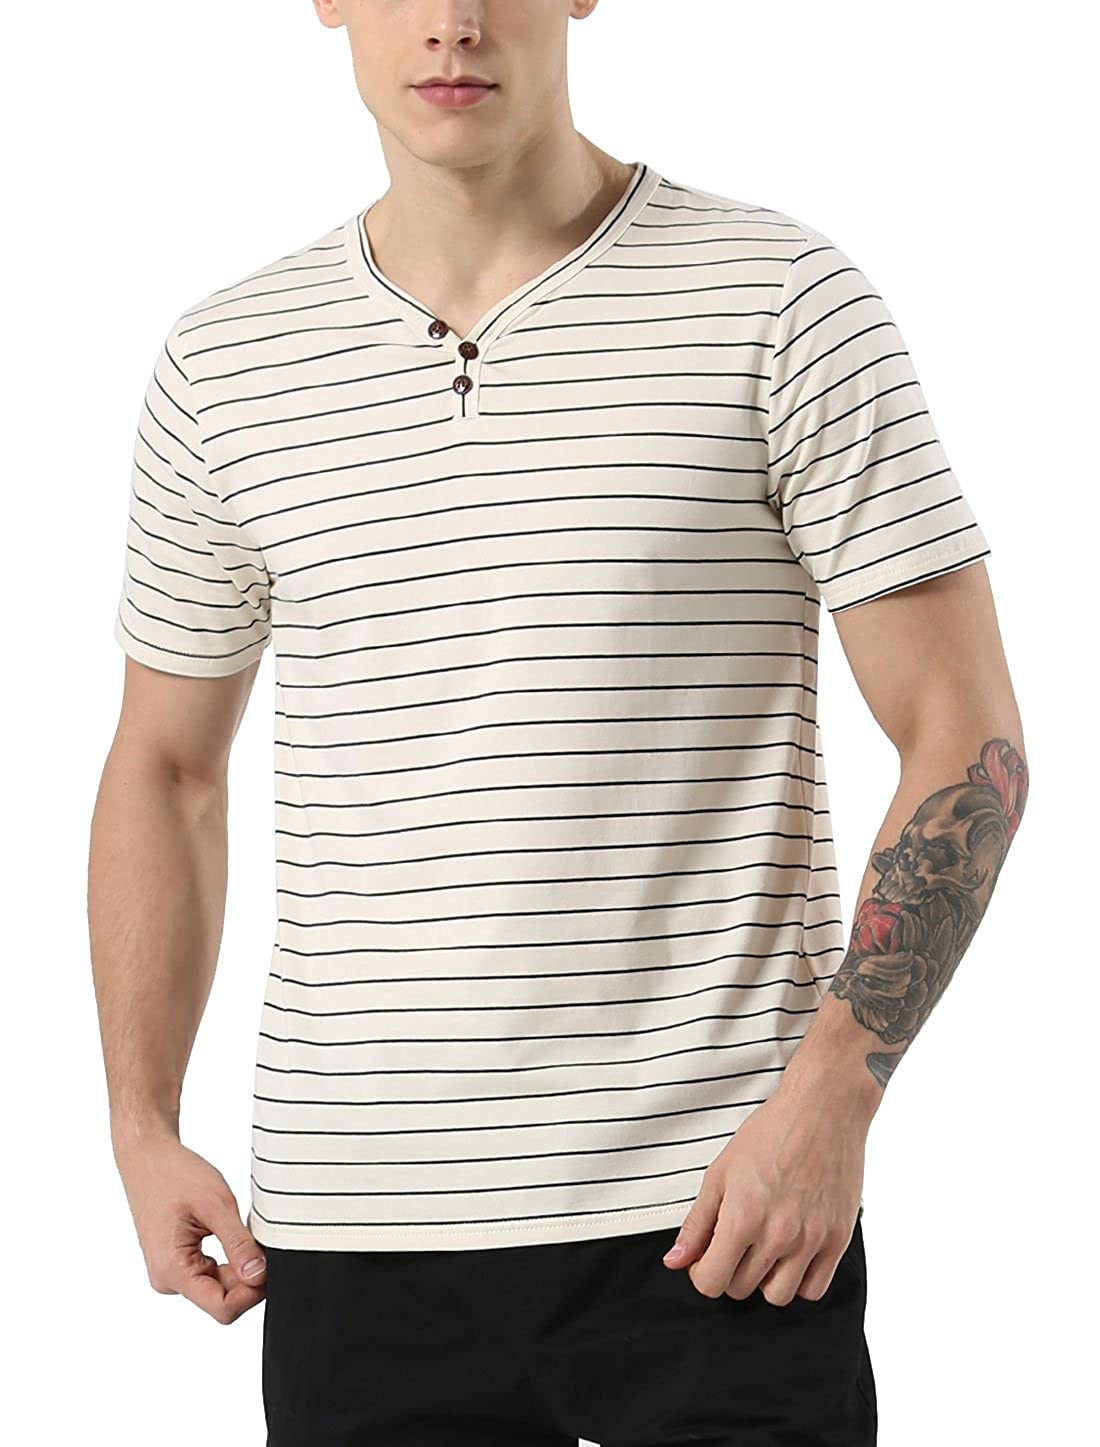 uxcell Men Casual Regular Fit Striped 3 Button Short Sleeve Henley Shirts